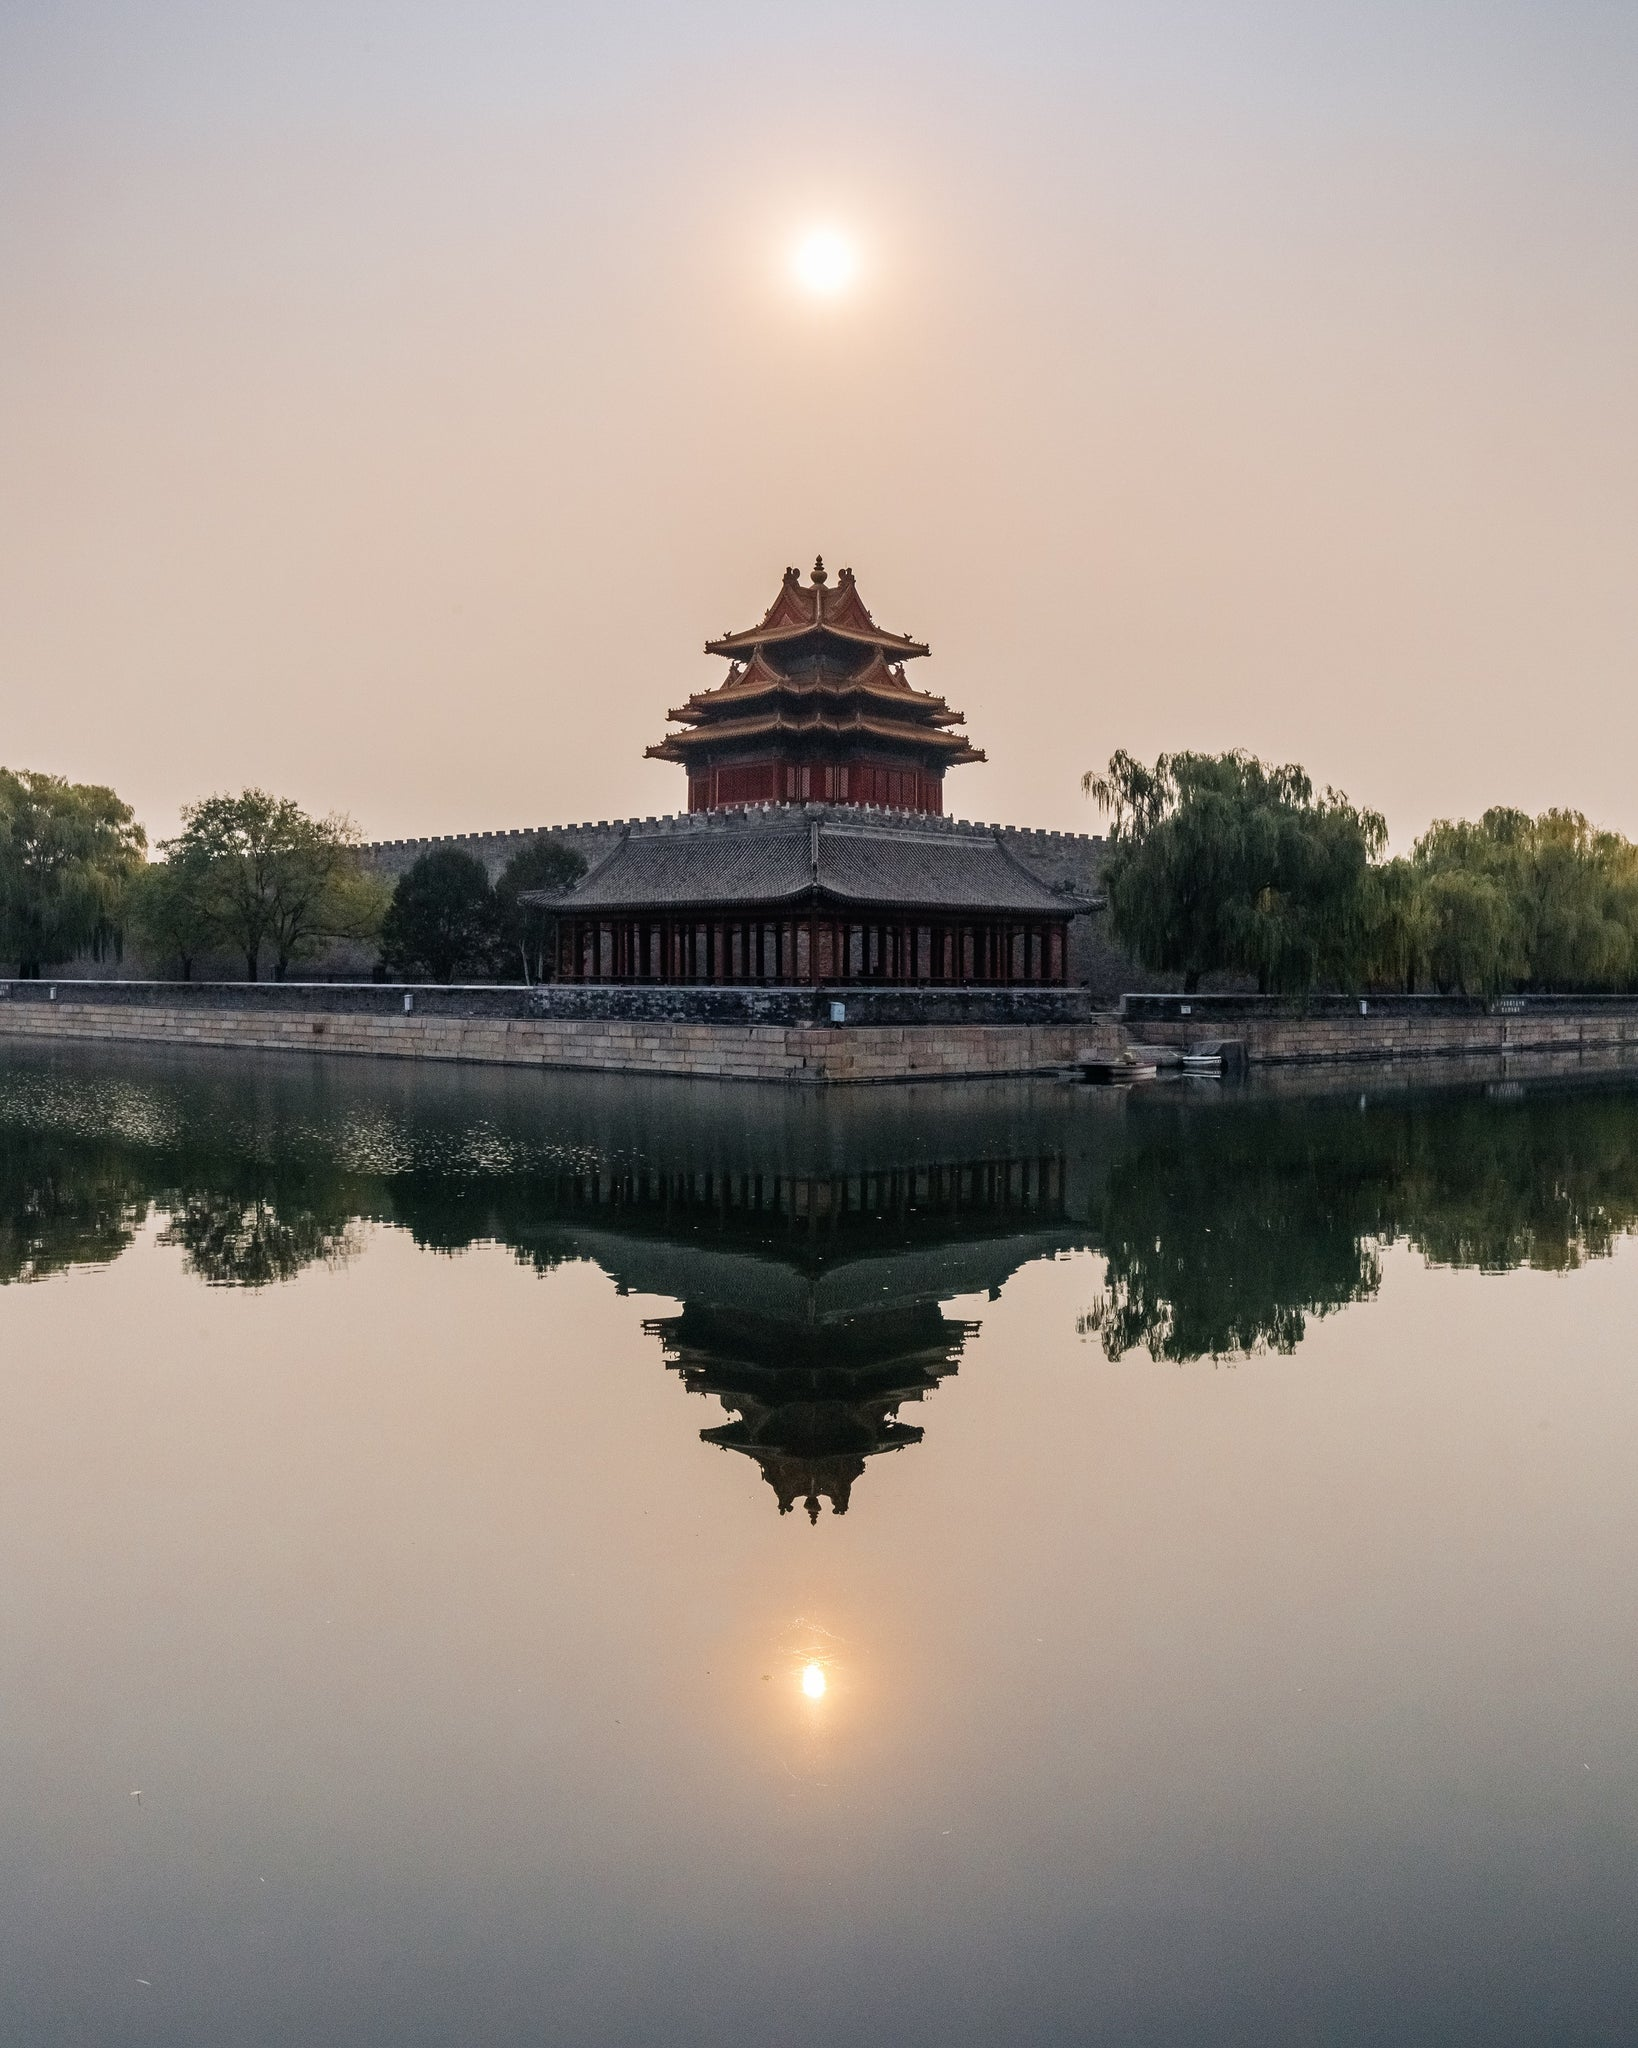 The outer walls of the Forbidden City, Beijing, China